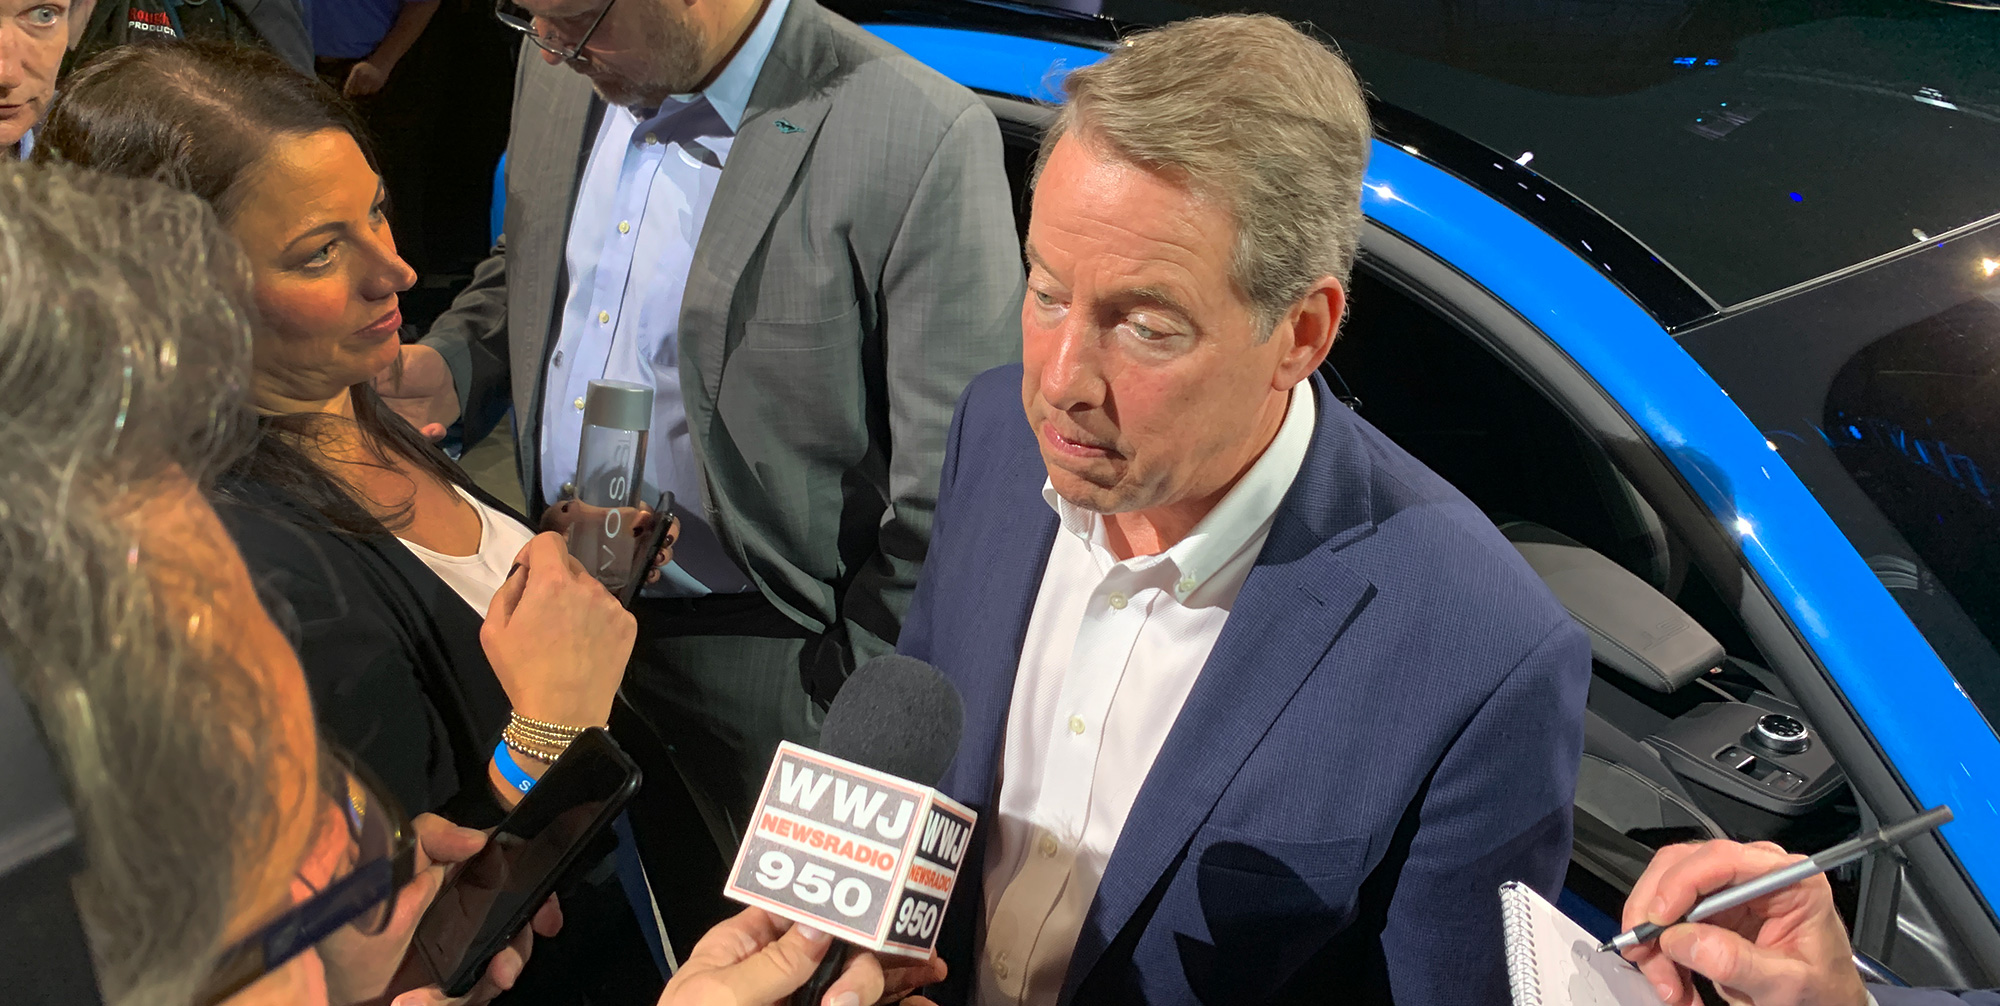 Bill Ford at the unveiling of the Mustang Mach-E